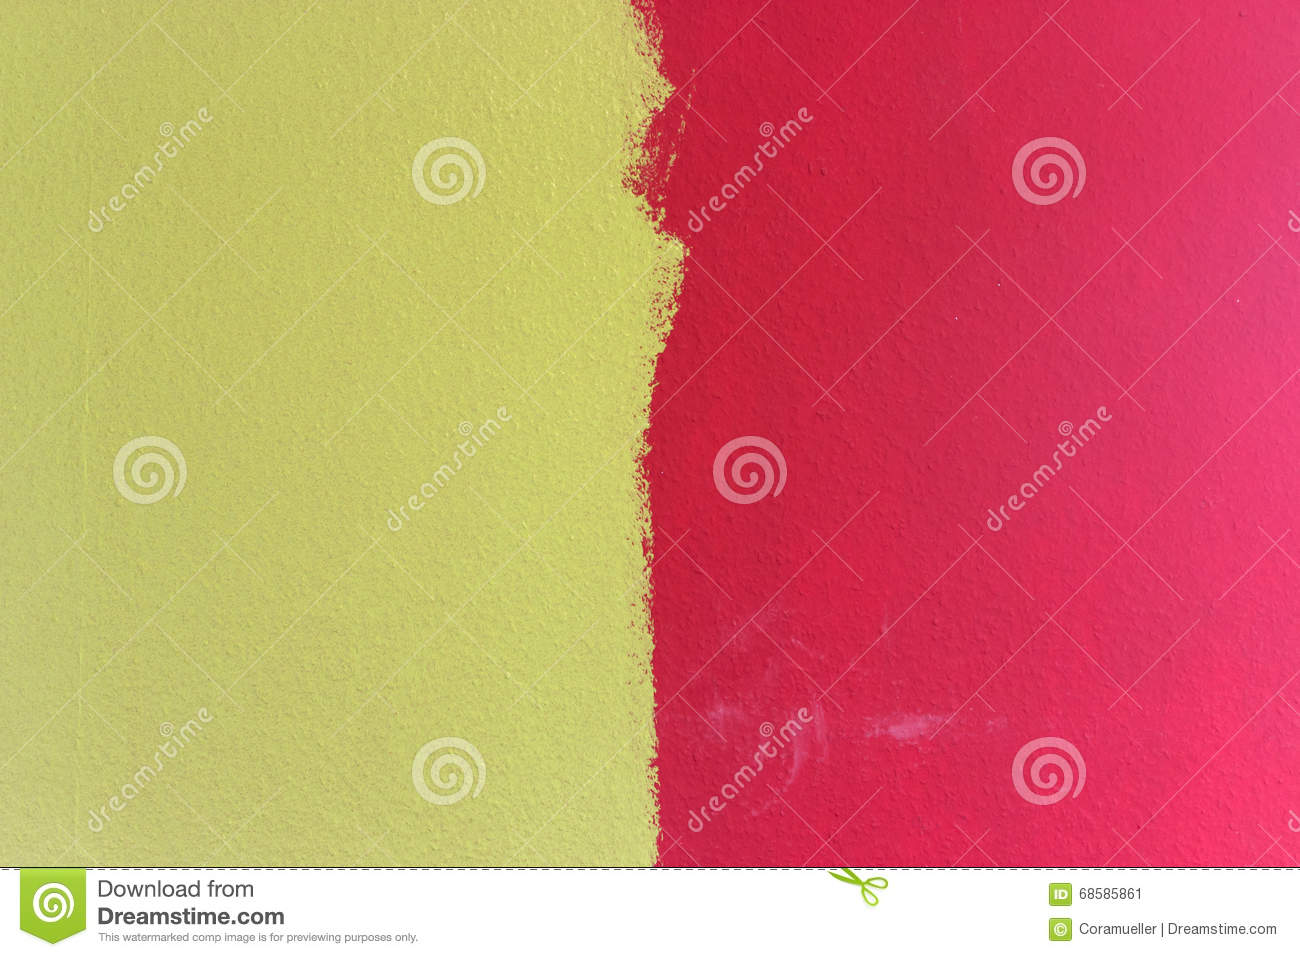 Wall color stock image. Image of painters, redecorate - 68585861